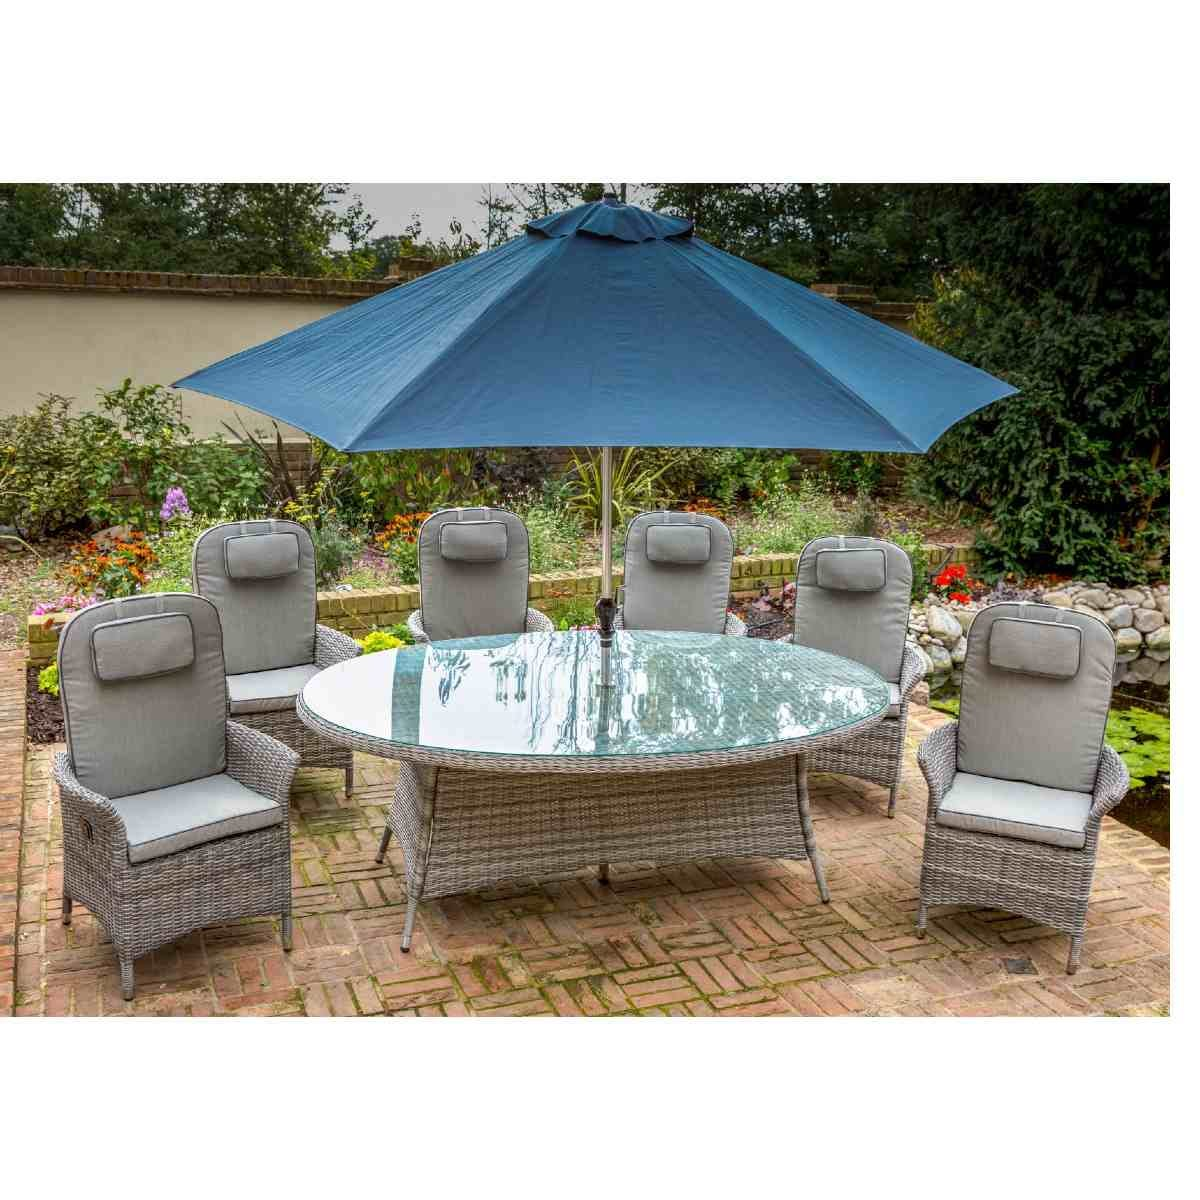 Katie Blake Flamingo 6 Reclining Chair Dining Set with 1.45m x 2.1m Oval Table Parasol & Base - Grey / Blue